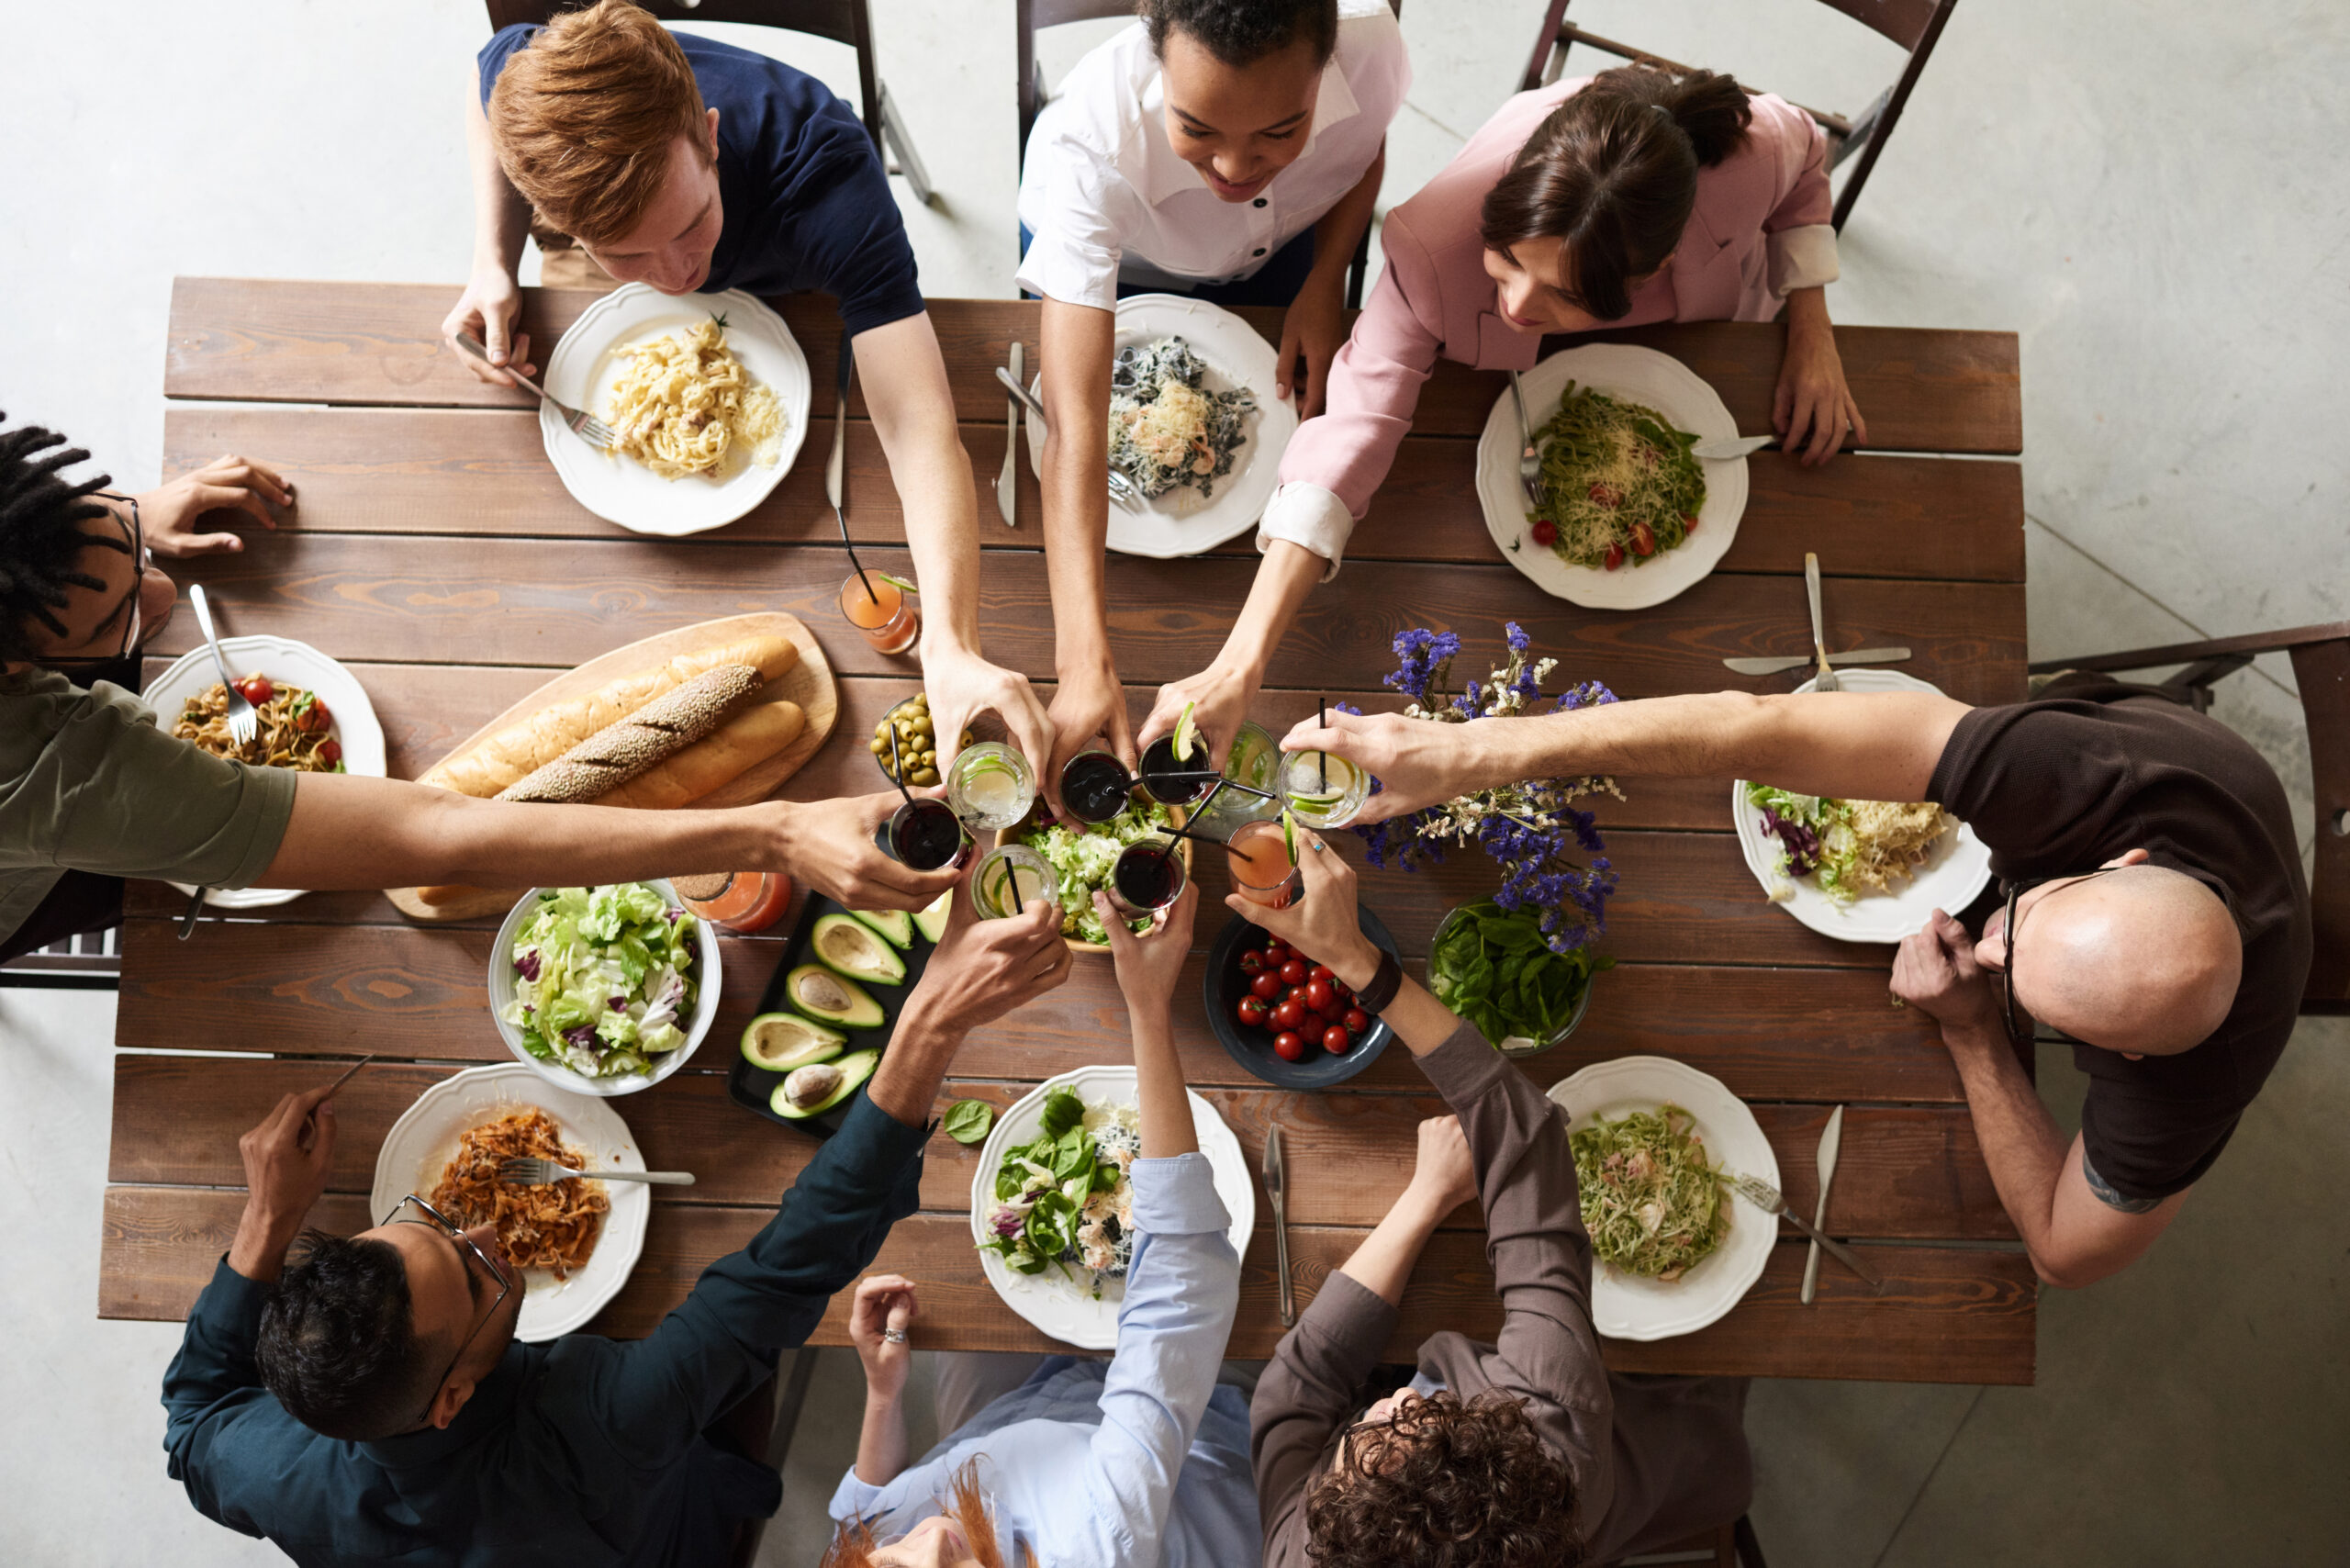 Overhead photo of group of people eating and toasting